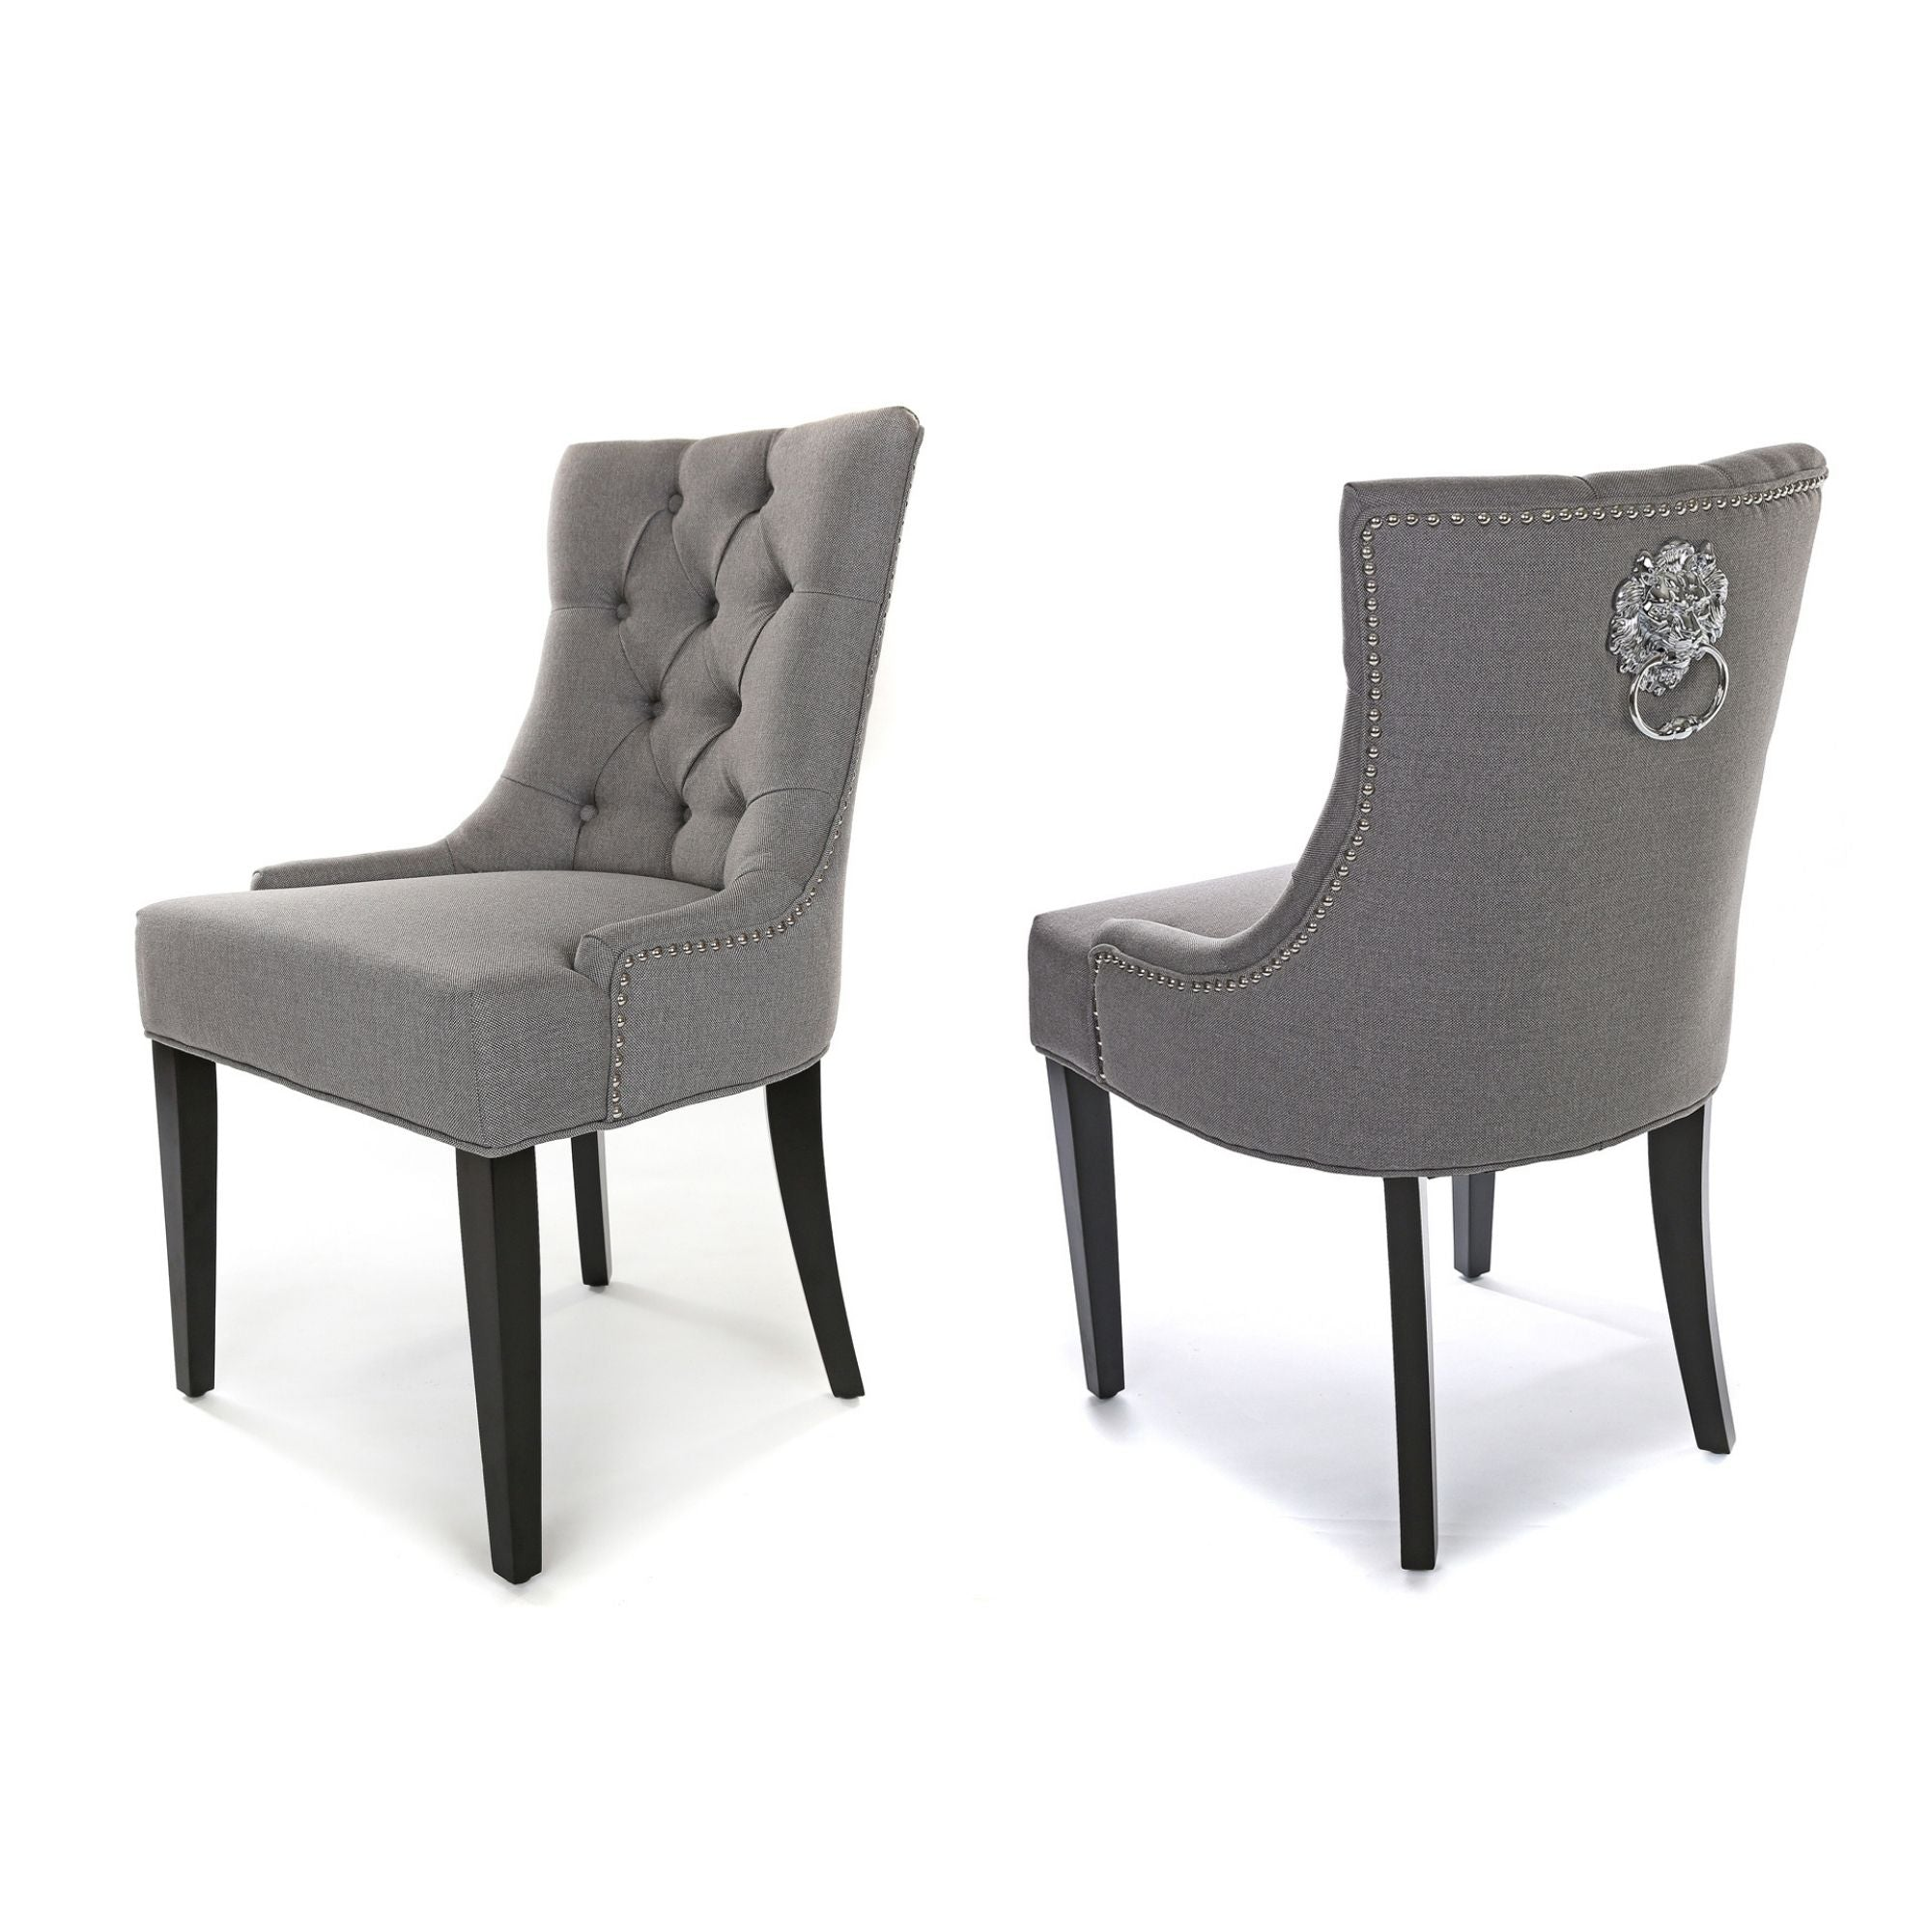 Porter Dining Chair, Grey Fabric, Black wood legs and metal lion knocker